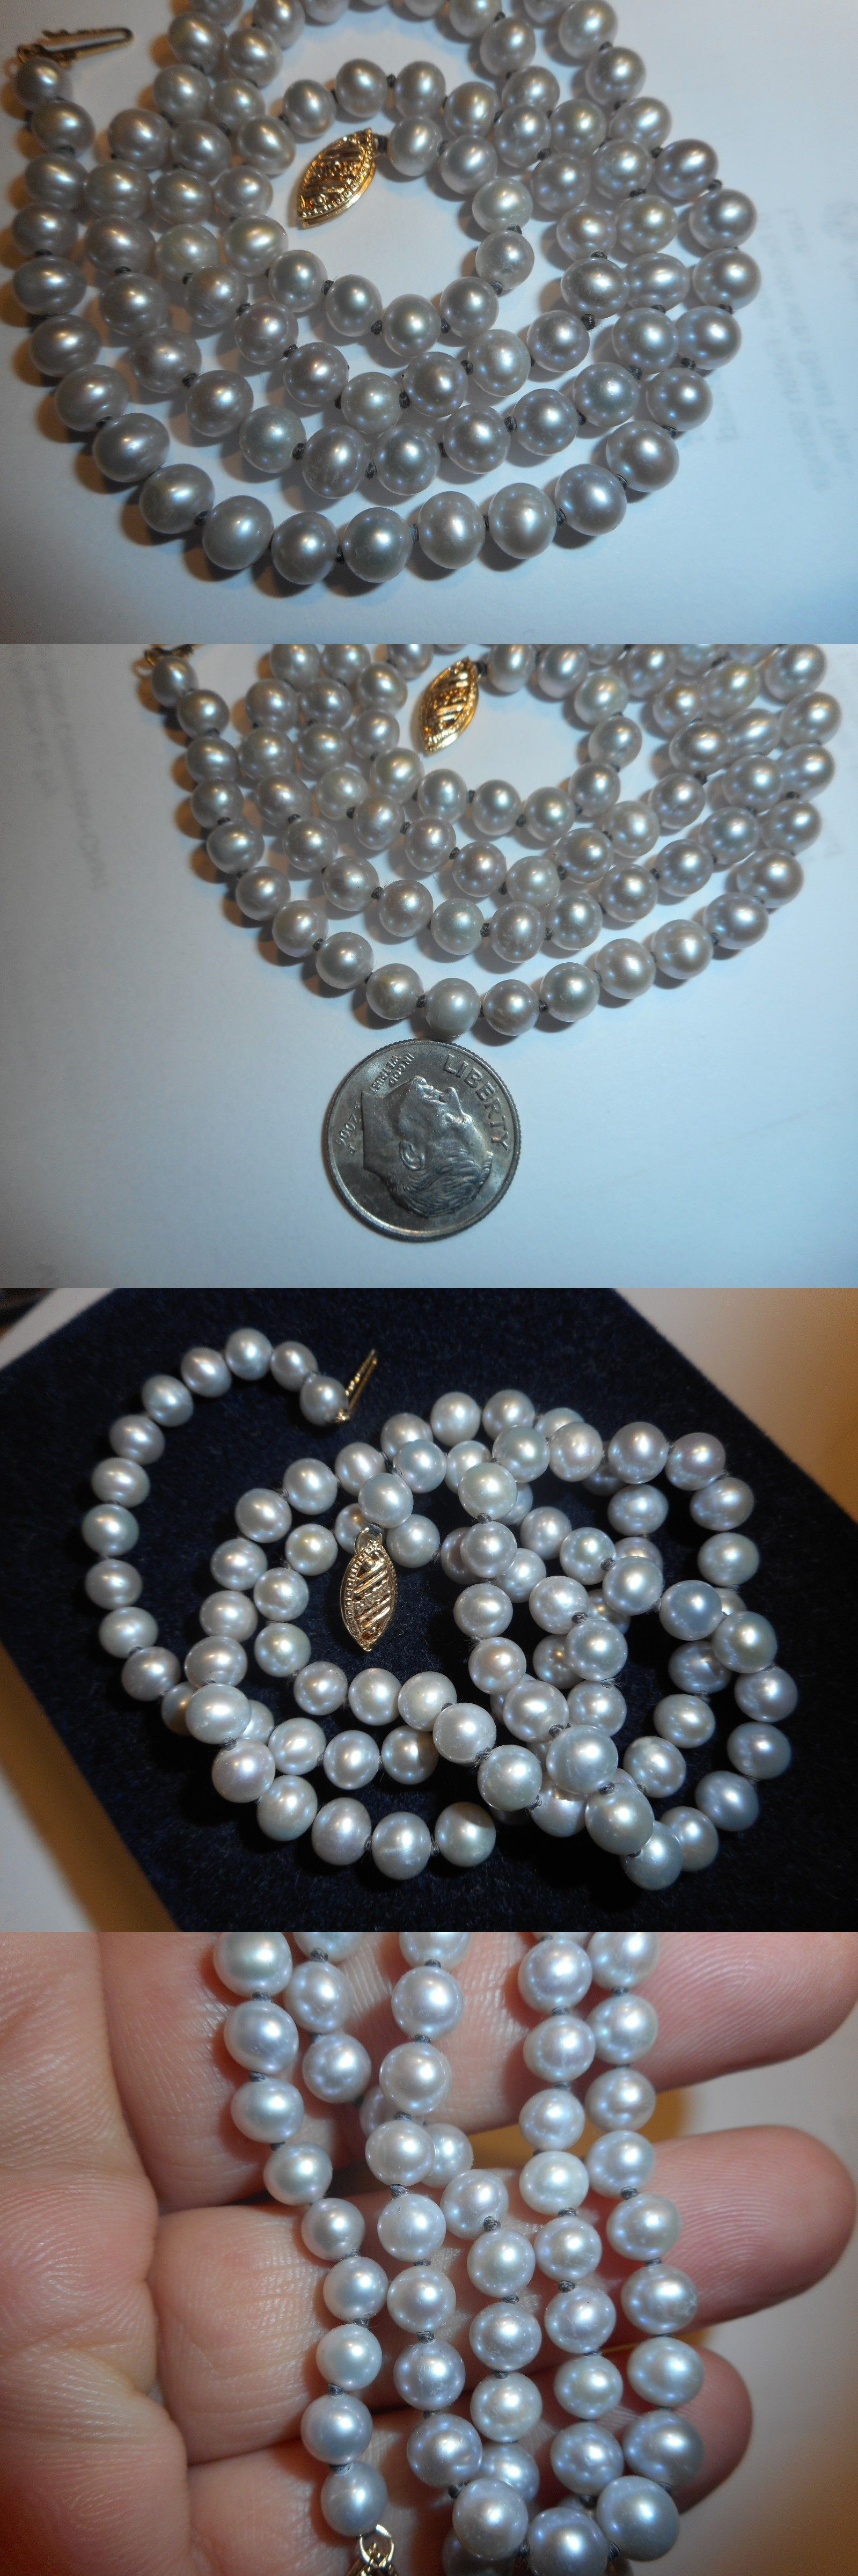 Necklaces and Pendants 165042: 14K High Quality Round Light Gray Cultured 5Mm Pearl 20.5 Necklace Vintage -> BUY IT NOW ONLY: $59.99 on eBay!